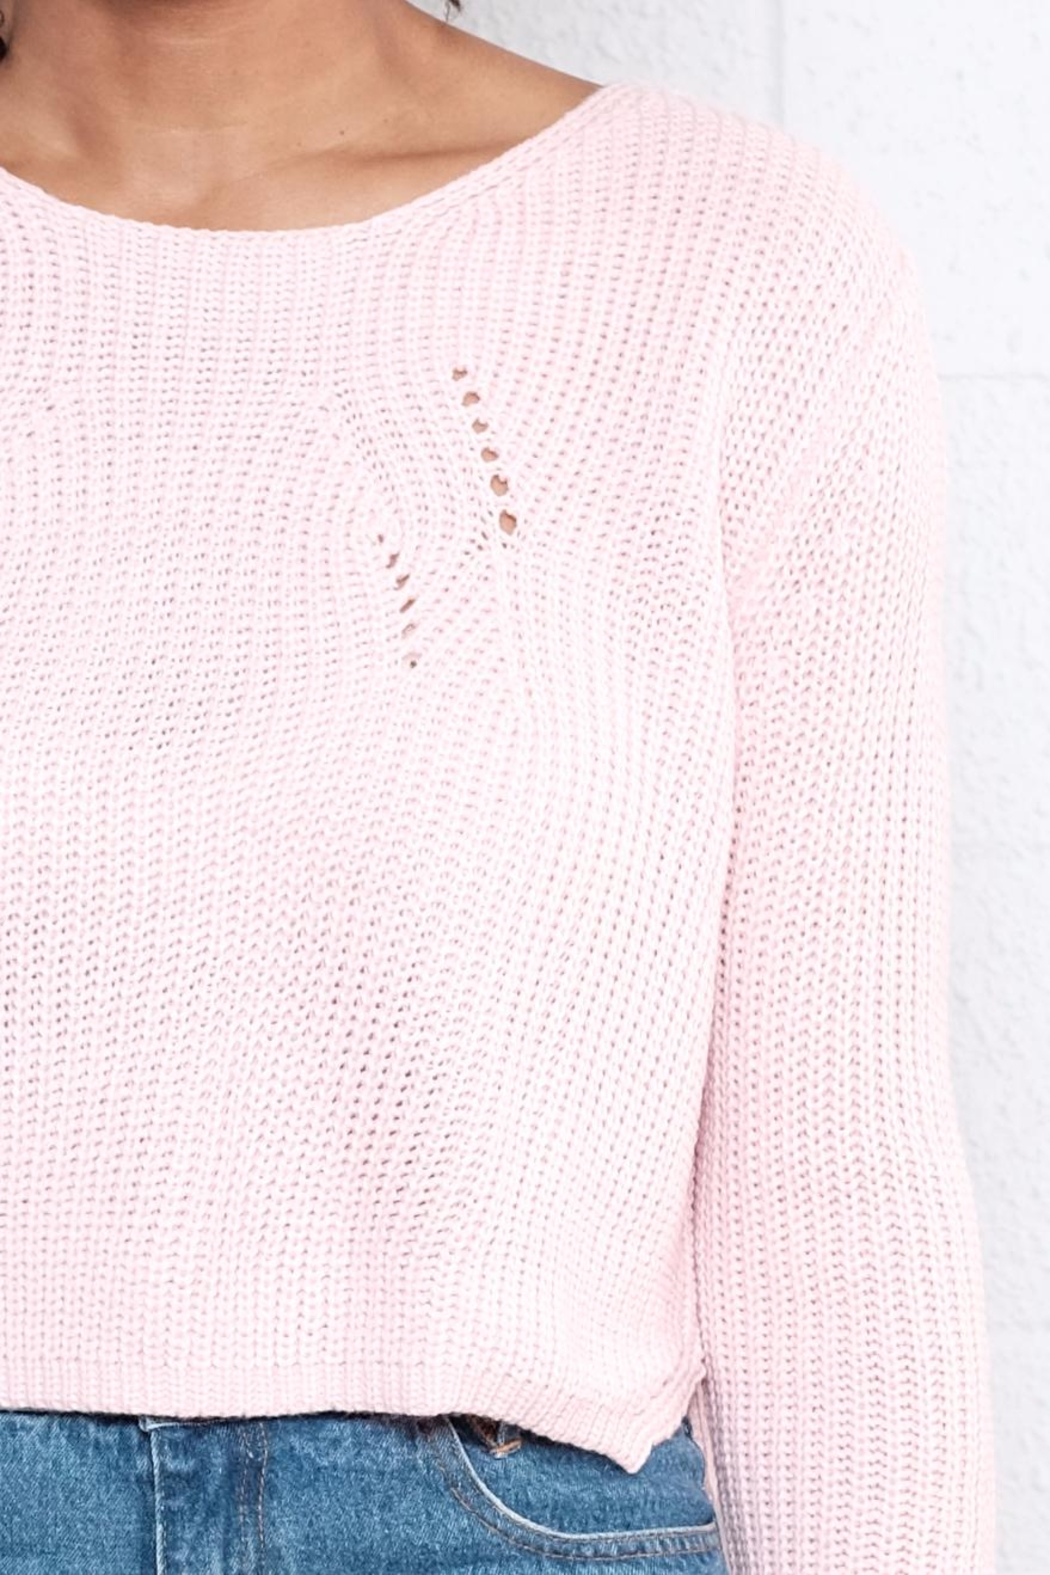 Moon Collection Cropped Knit Sweater from Vancouver by 8th & Main ...